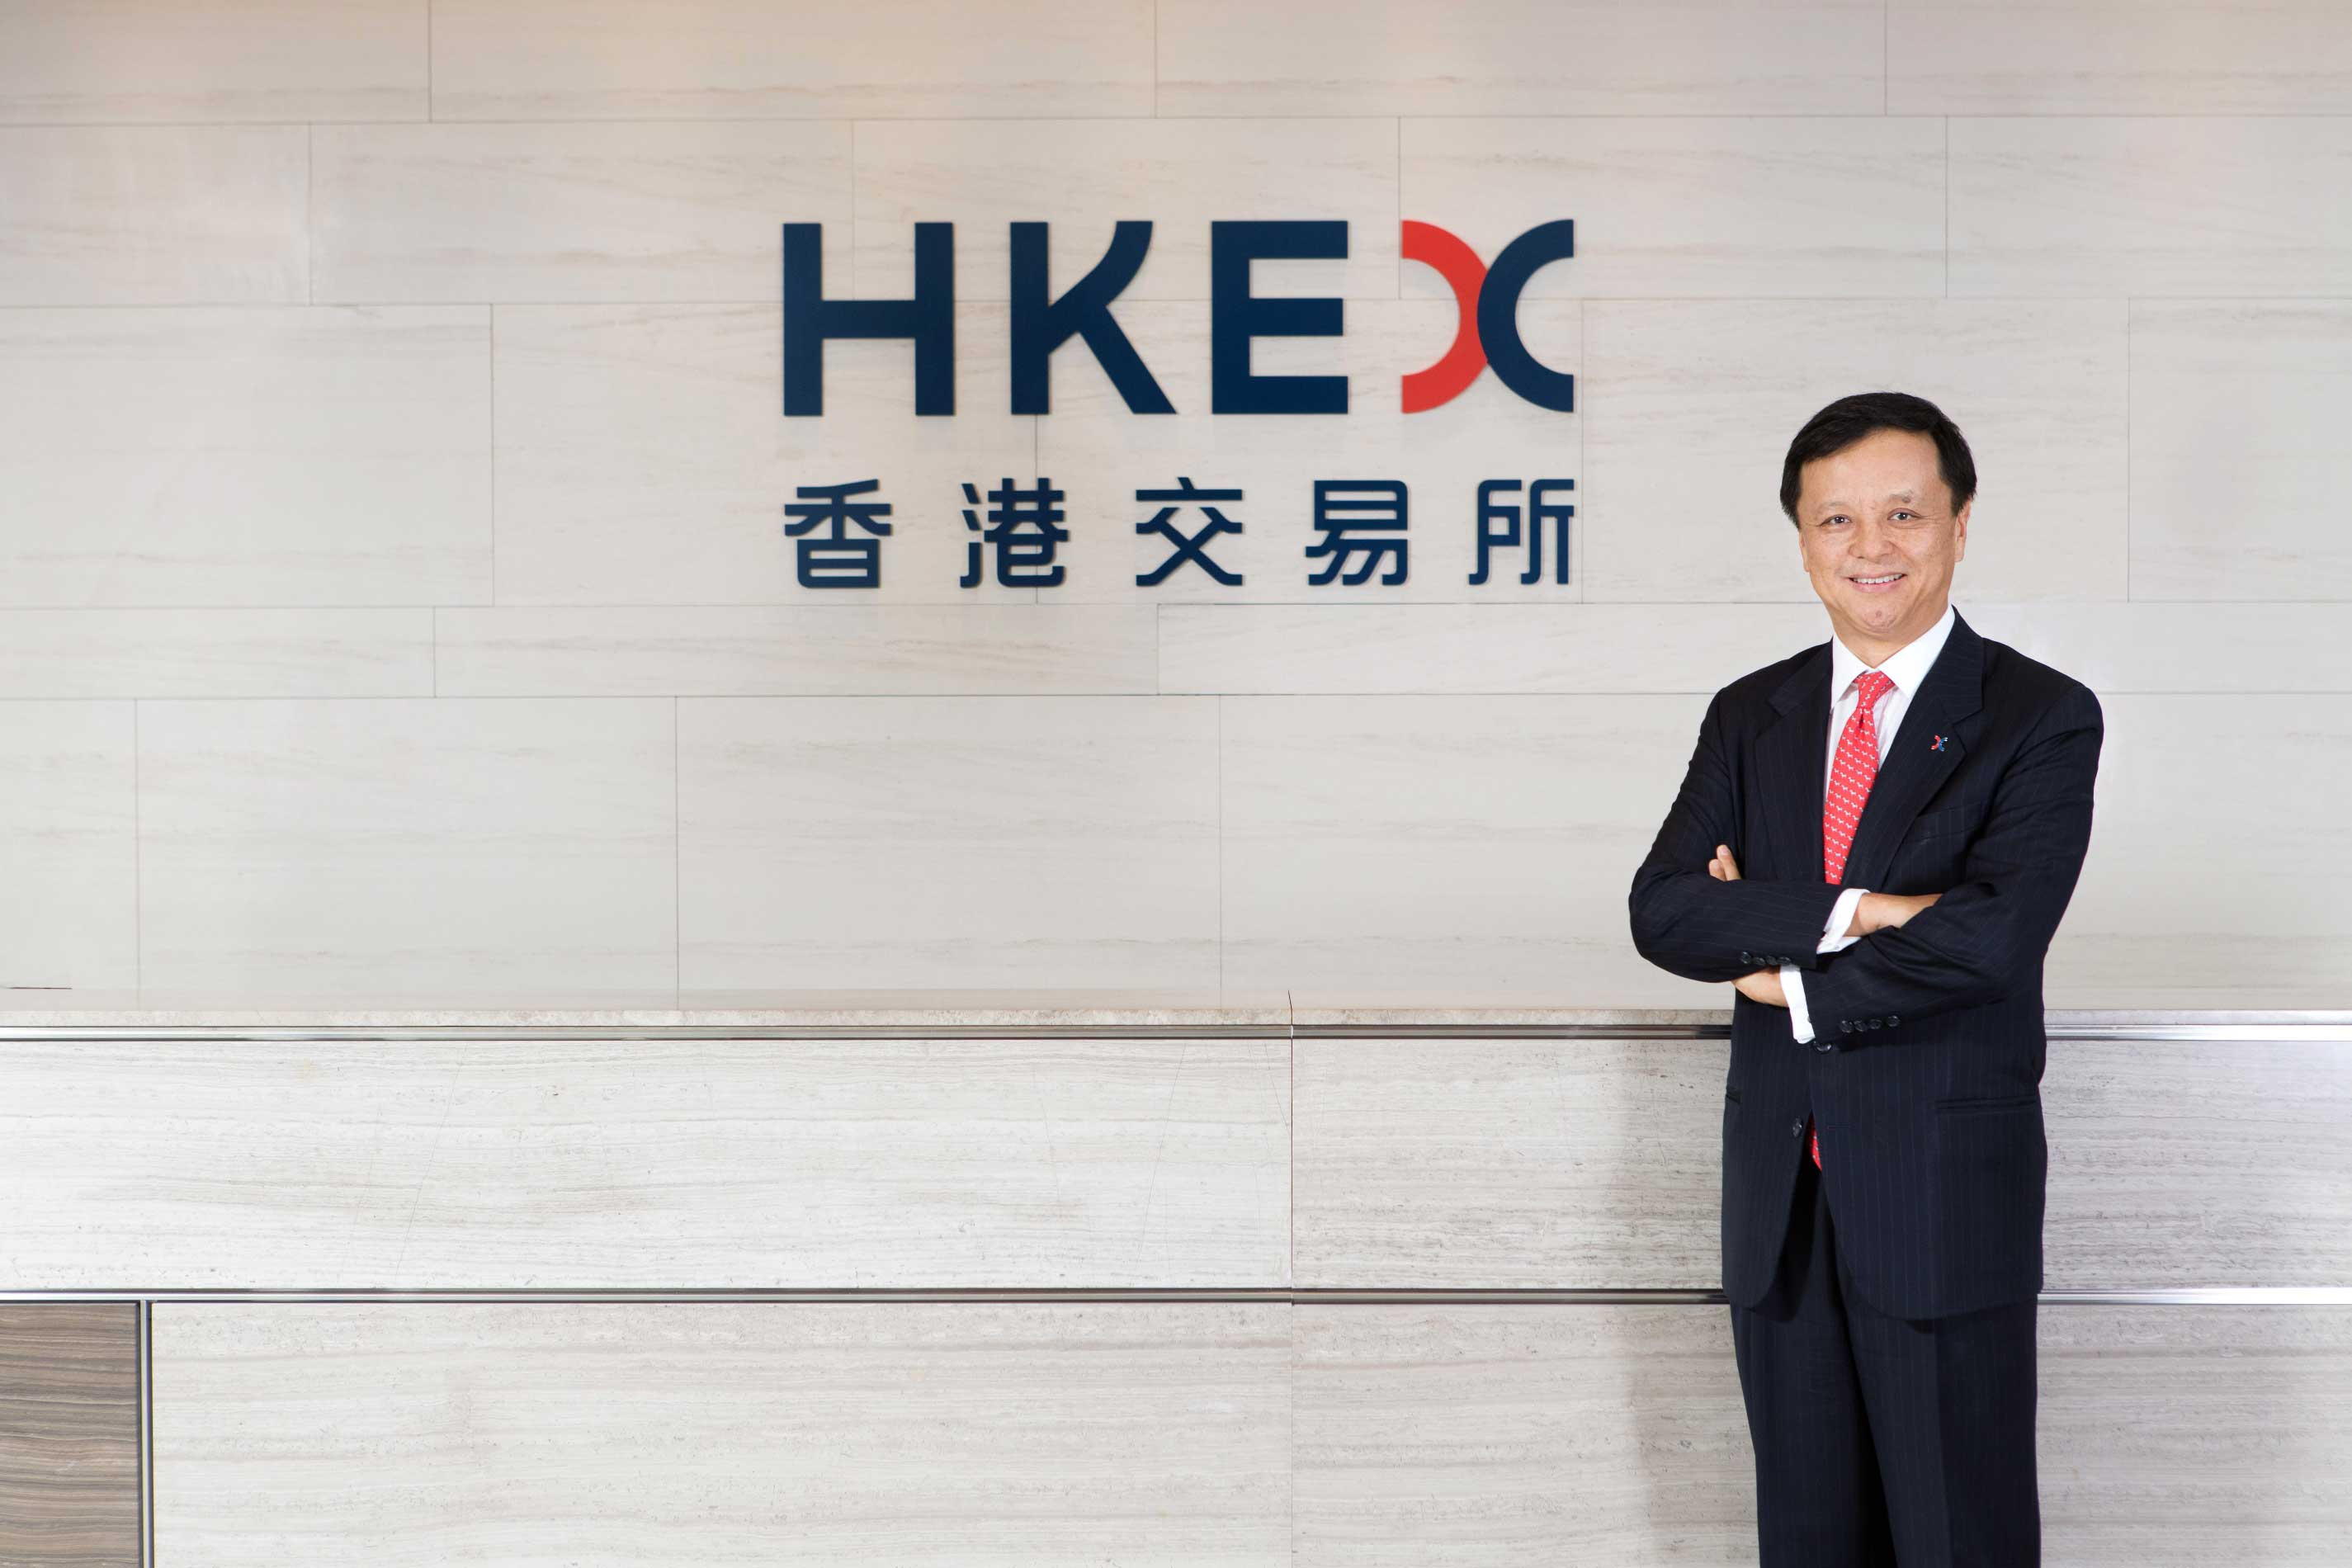 HKEX Chief Executive Charles Li says the new brand identity highlights HKEX's ambition to become the pioneer of the world's financial markets.